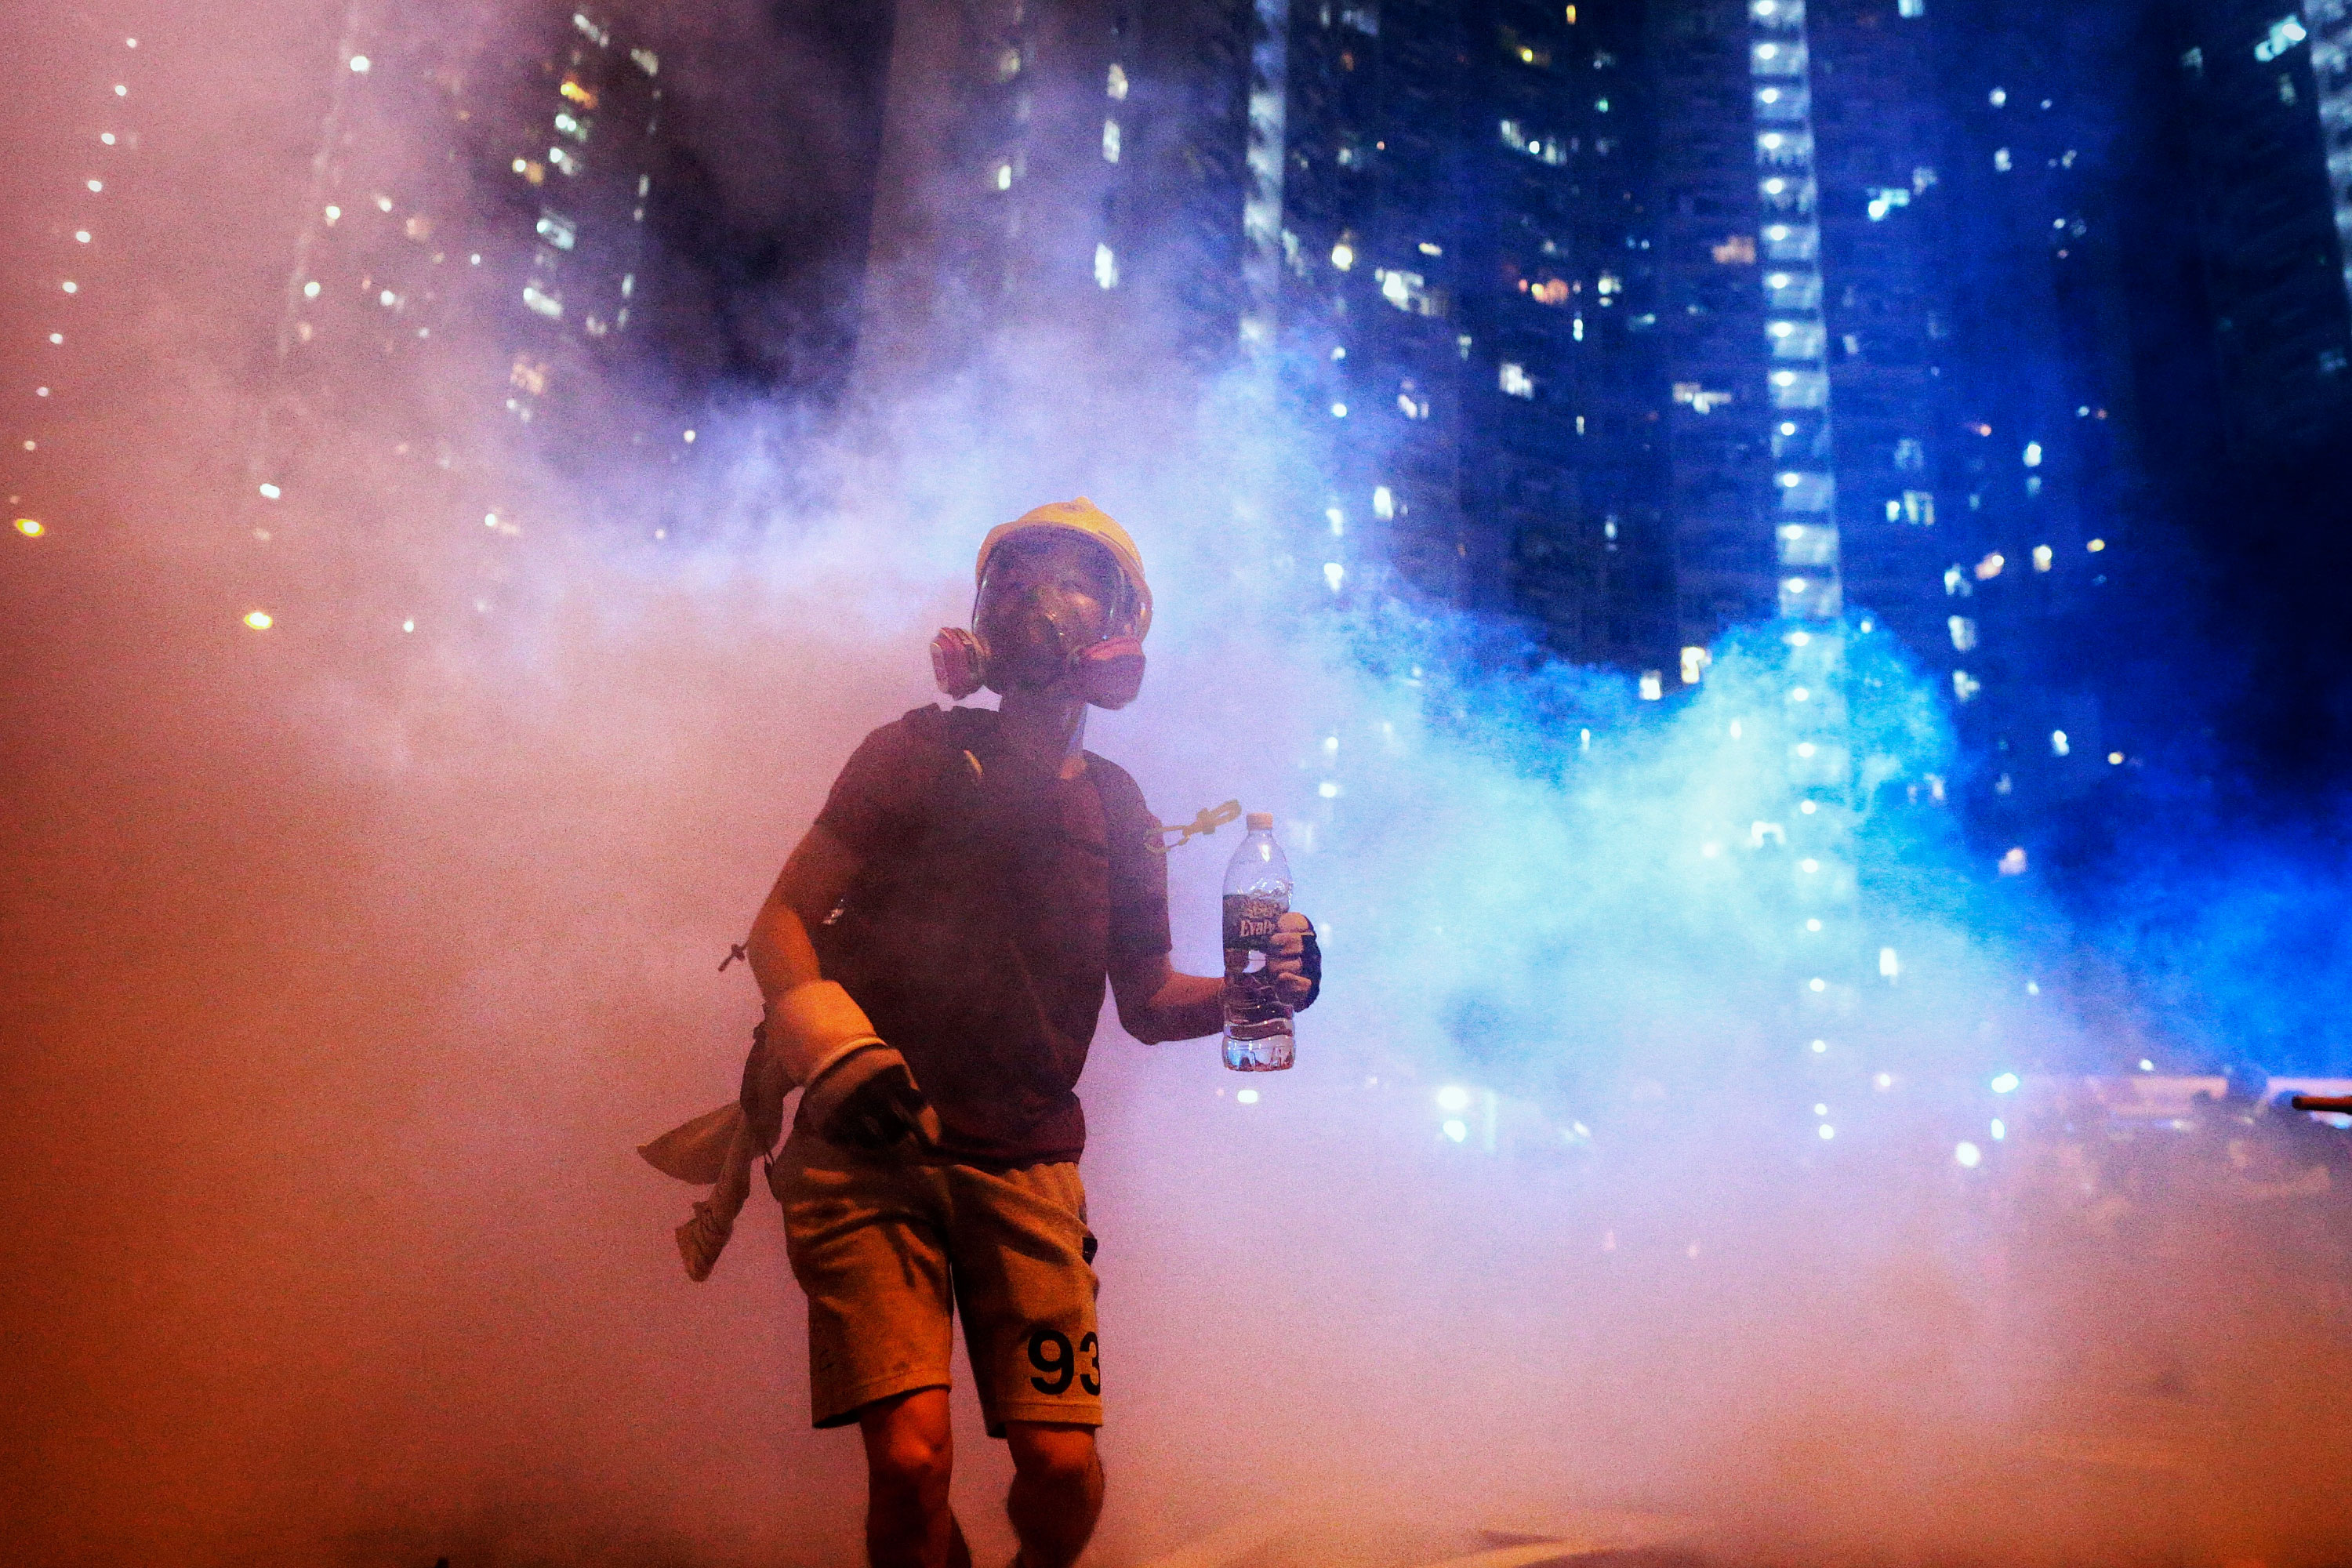 A masked protester walks through clouds of tear gas in Hong Kong. Three months of this protracted tussle have tarnished the image of China, which, at least on paper, espouses a philosophy of peace and tolerance. The communist government's attempts to suppress the unrest are unjust.